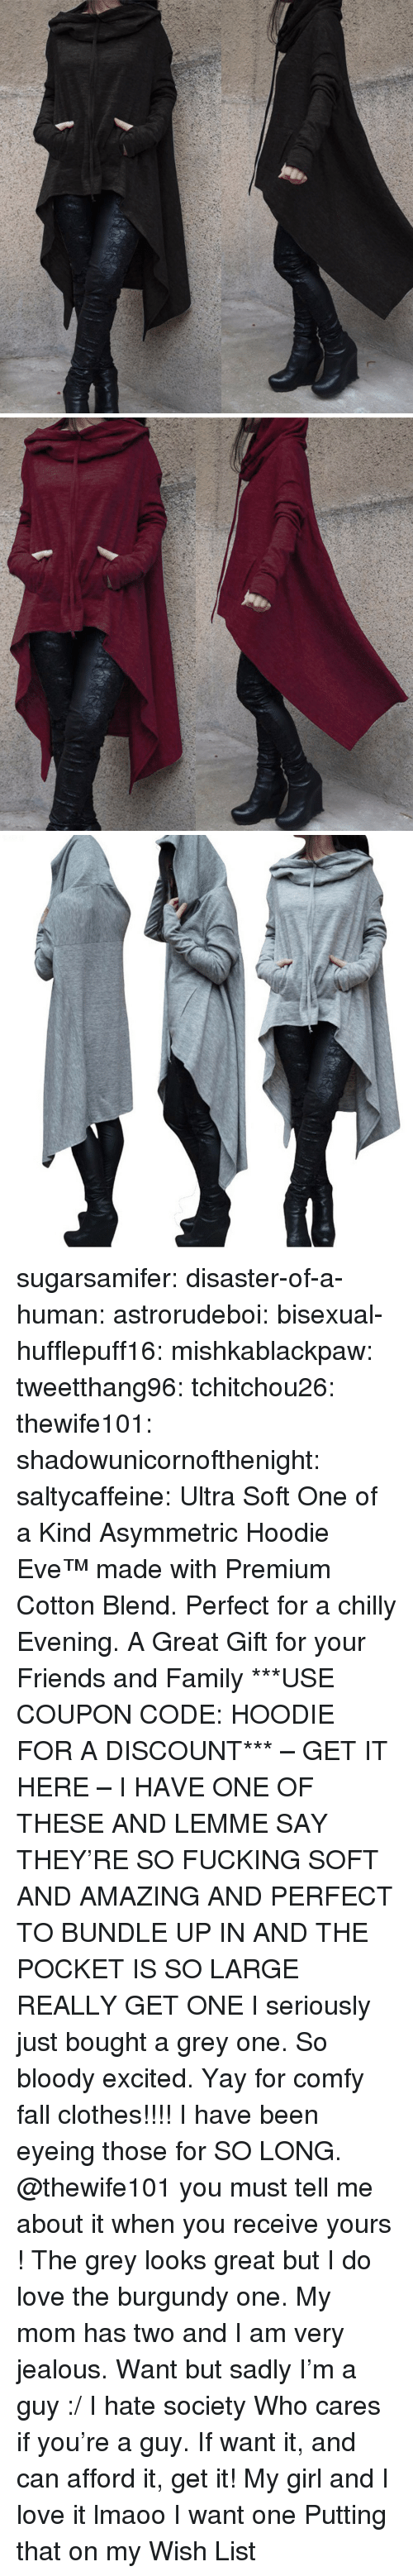 Clothes, Fall, and Family: sugarsamifer:  disaster-of-a-human:  astrorudeboi:   bisexual-hufflepuff16:  mishkablackpaw:   tweetthang96:  tchitchou26:  thewife101:  shadowunicornofthenight:  saltycaffeine:  Ultra Soft One of a Kind Asymmetric Hoodie Eve™made with Premium Cotton Blend. Perfect for a chilly Evening. A Great Gift for your Friends and Family ***USE COUPON CODE: HOODIE FOR A DISCOUNT*** – GET IT HERE –   I HAVE ONE OF THESE AND LEMME SAY THEY'RE SO FUCKING SOFT AND AMAZING AND PERFECT TO BUNDLE UP IN AND THE POCKET IS SO LARGE REALLY GET ONE   I seriously just bought a grey one. So bloody excited. Yay for comfy fall clothes!!!!   I have been eyeing those for SO LONG. @thewife101 you must tell me about it when you receive yours ! The grey looks great but I do love the burgundy one.   My mom has two and I am very jealous.   Want but sadly I'm a guy :/ I hate society   Who cares if you're a guy. If want it, and can afford it, get it!   My girl and I love it lmaoo   I want one   Putting that on my Wish List